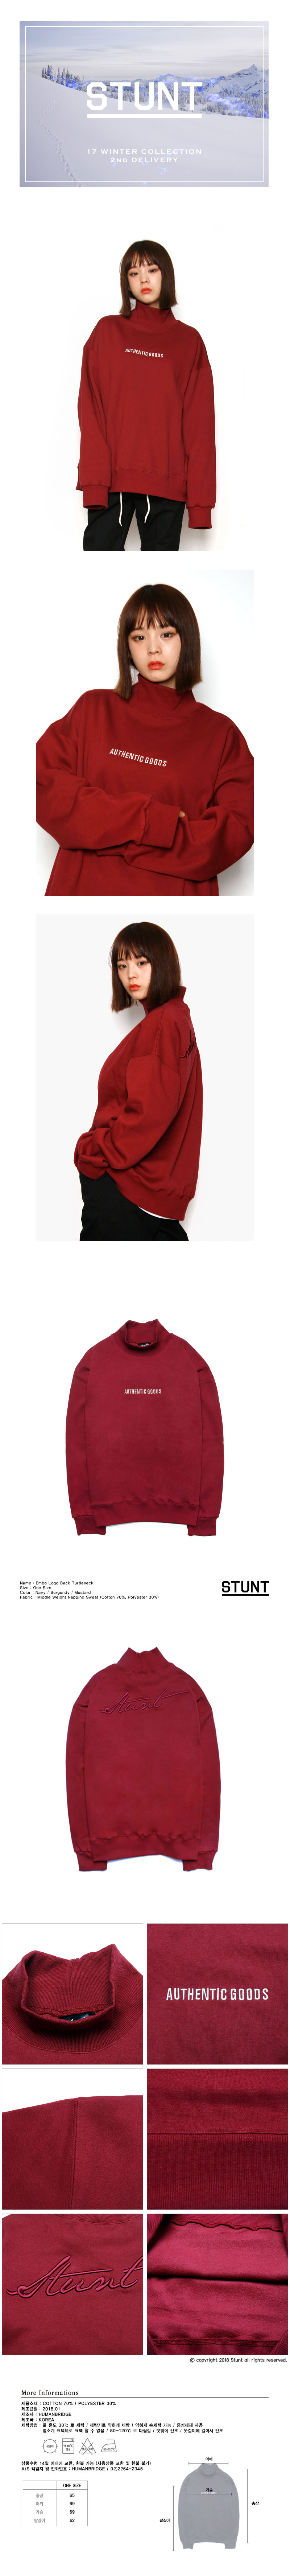 embo-logo-back-turtleneck-(burgundy).jpg